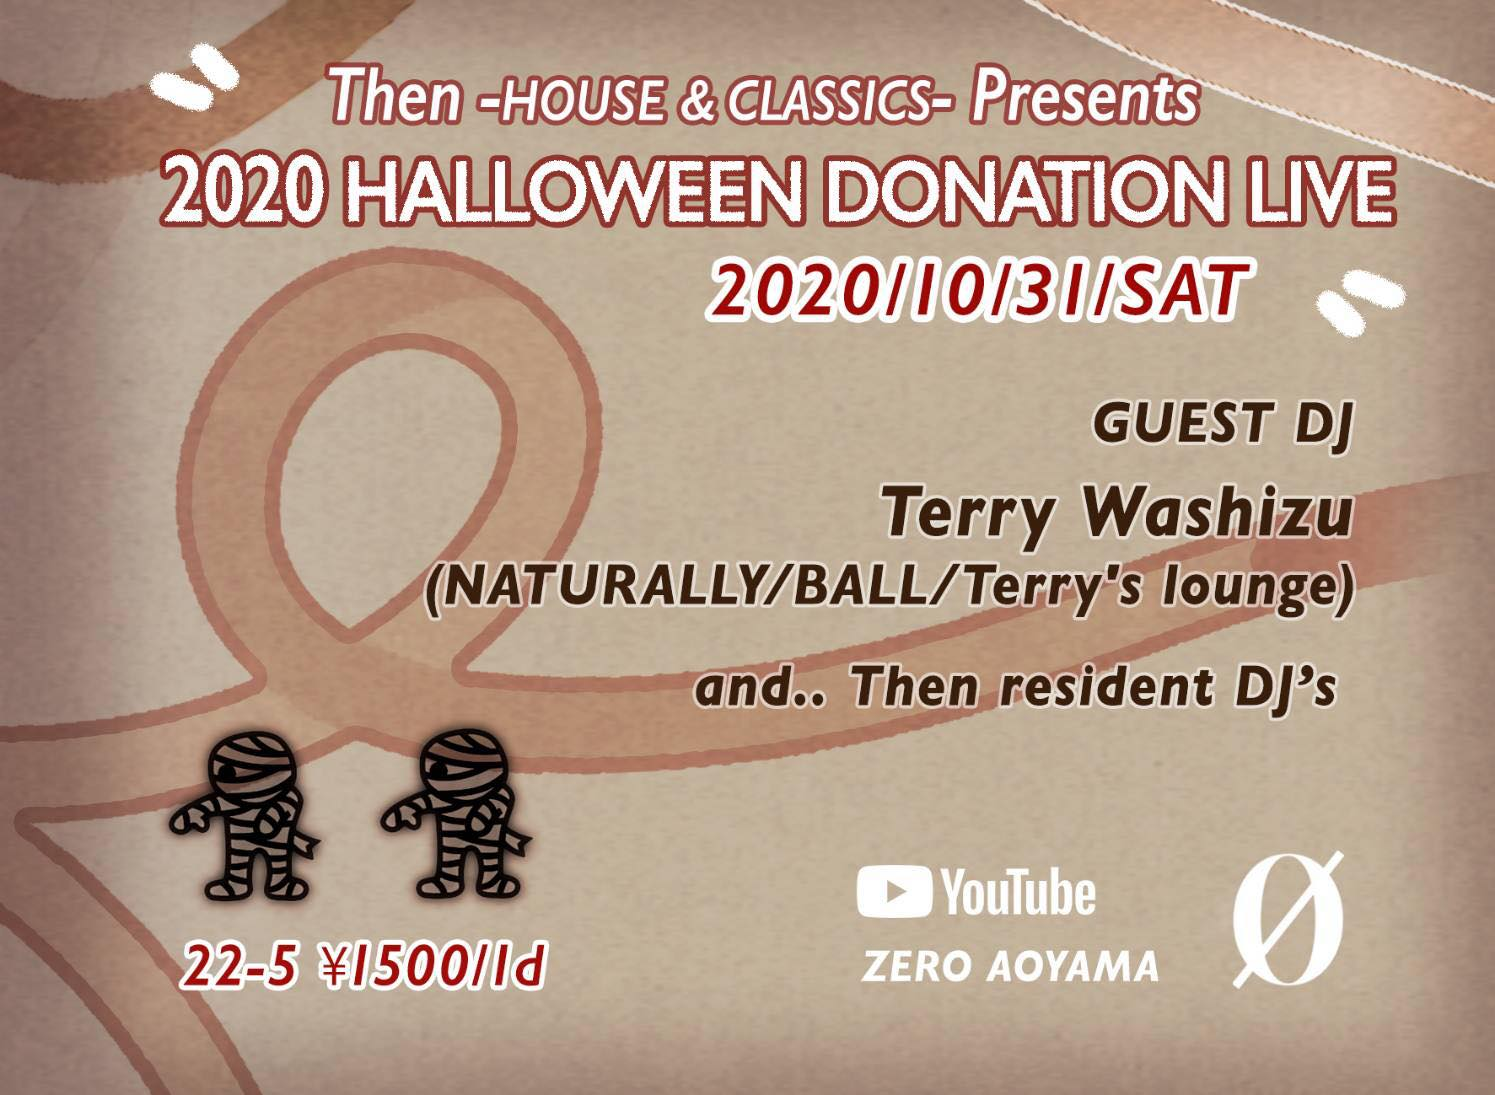 Then presents 2020 HALLOWEEN DONATION LIVE